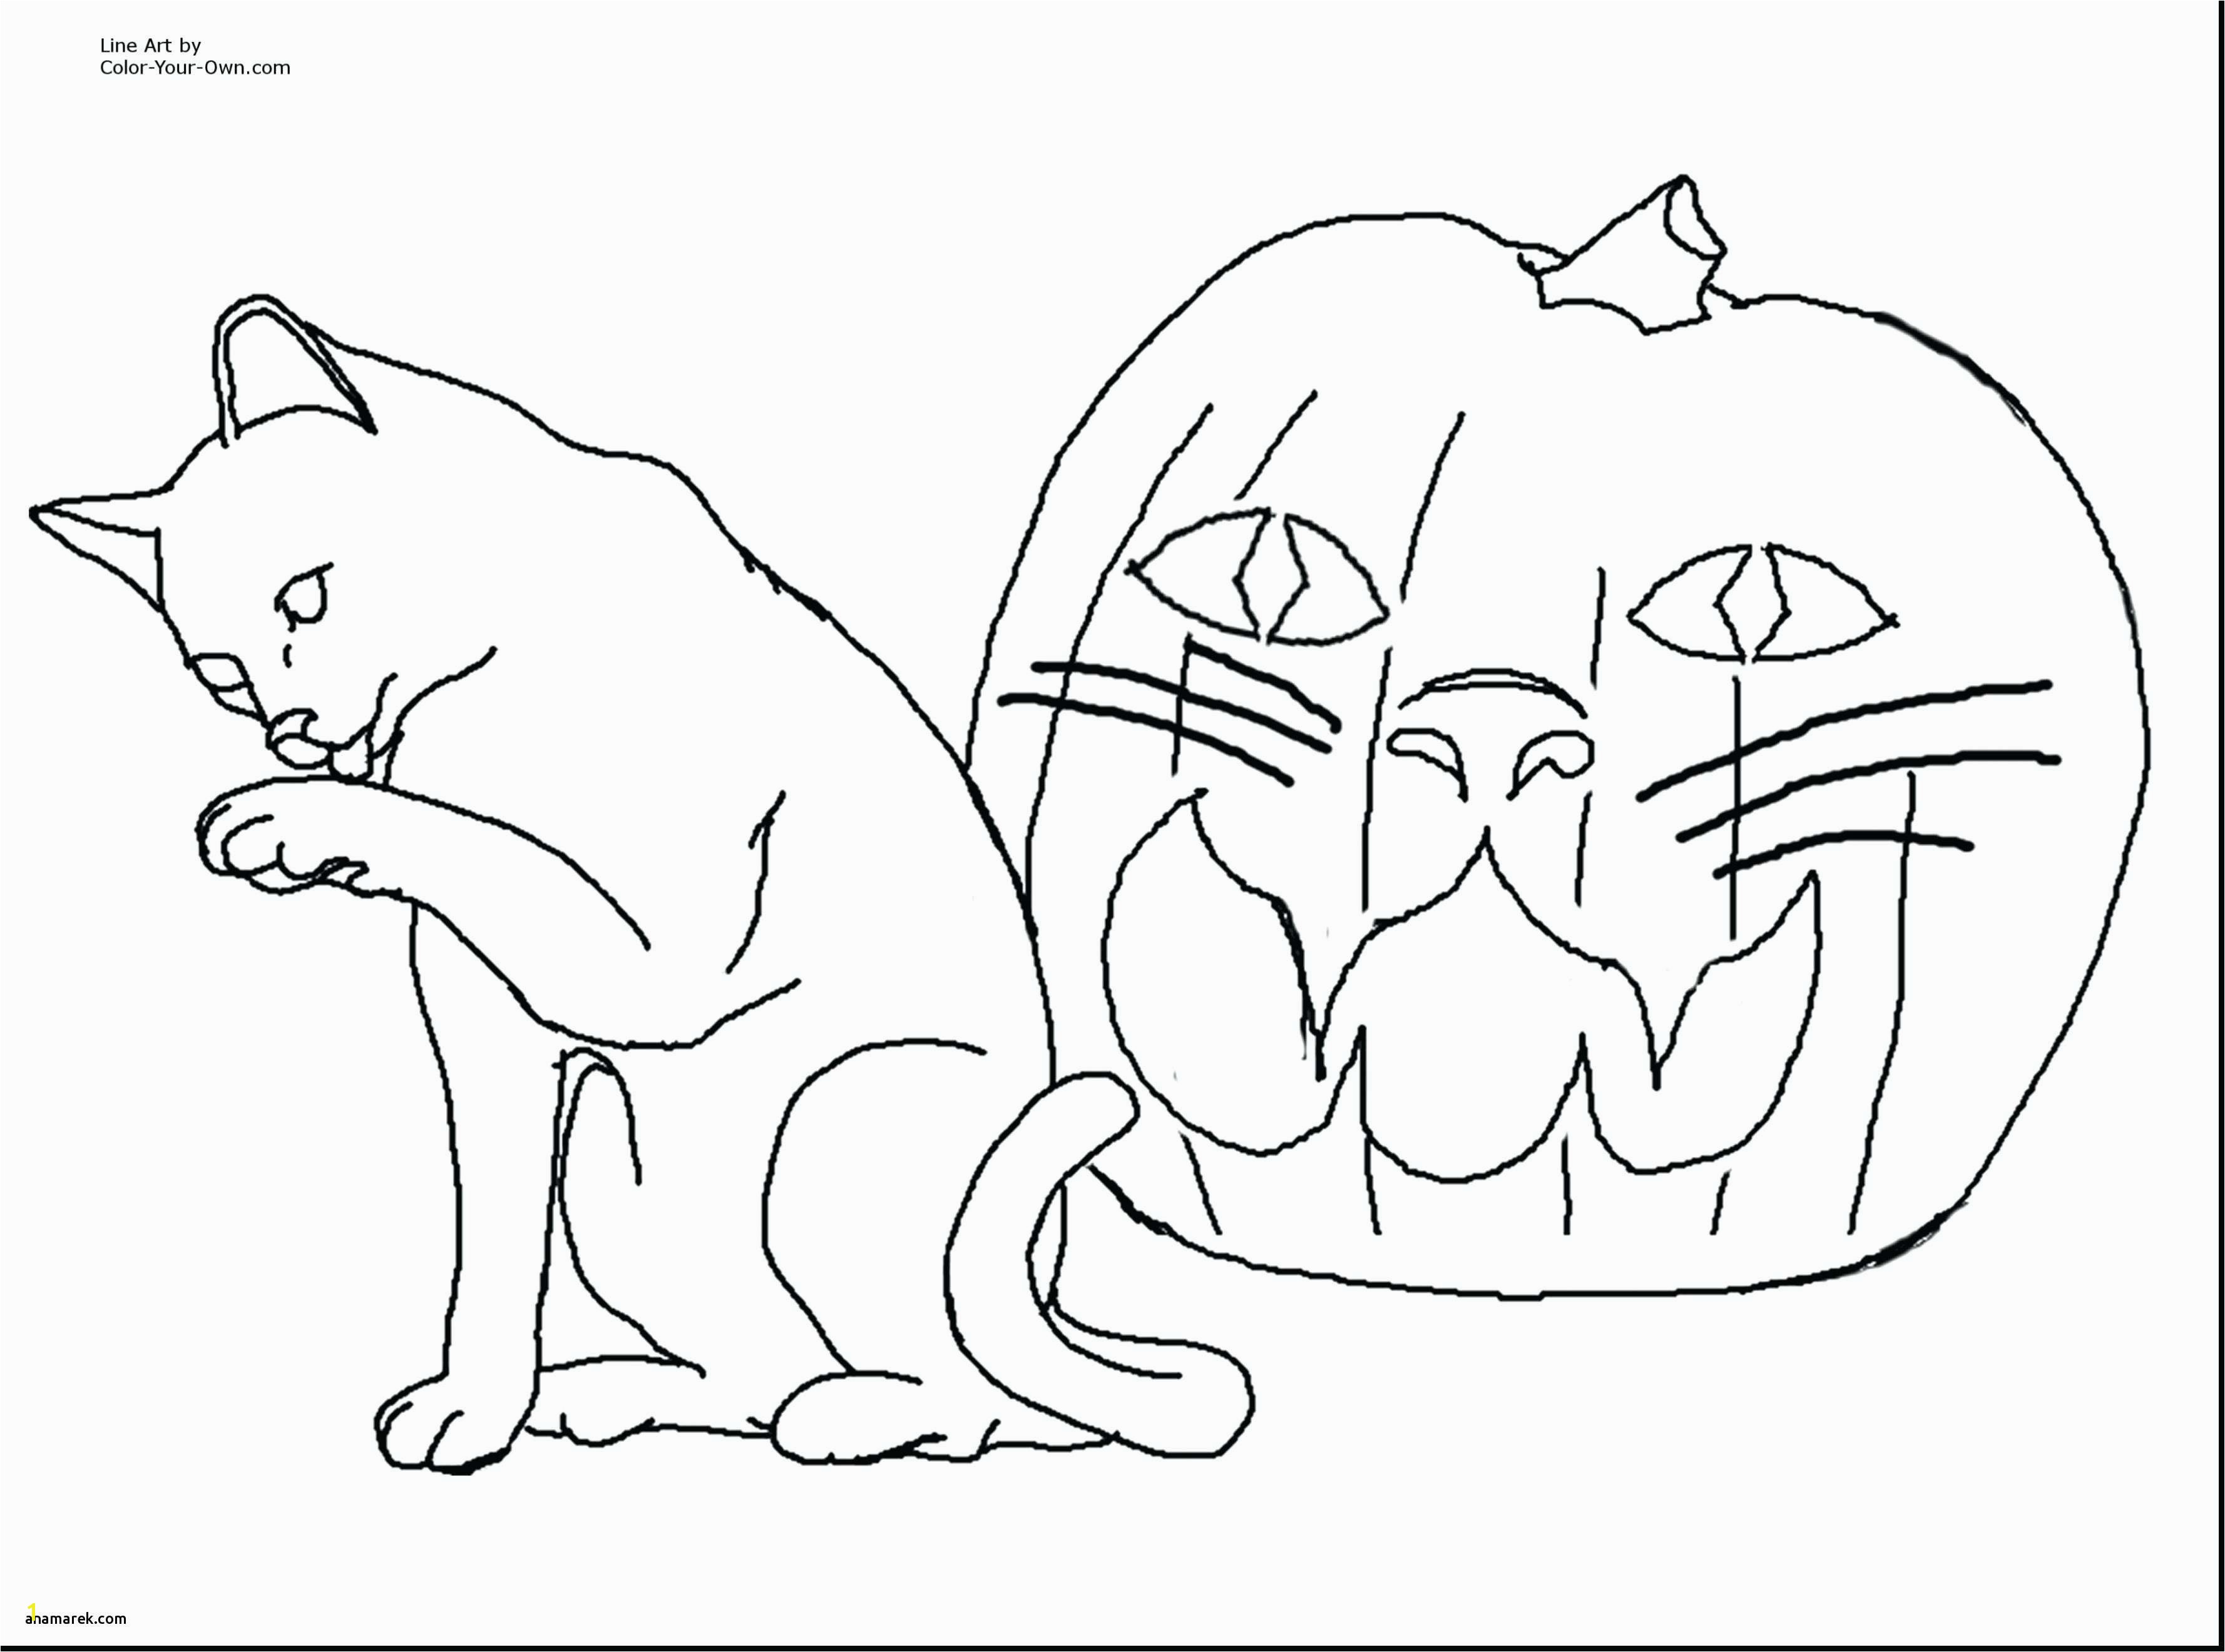 Free Printable Cat and Dog Coloring Pages Cool Coloring Sheets for Boys Download Cat Coloring Pages Free